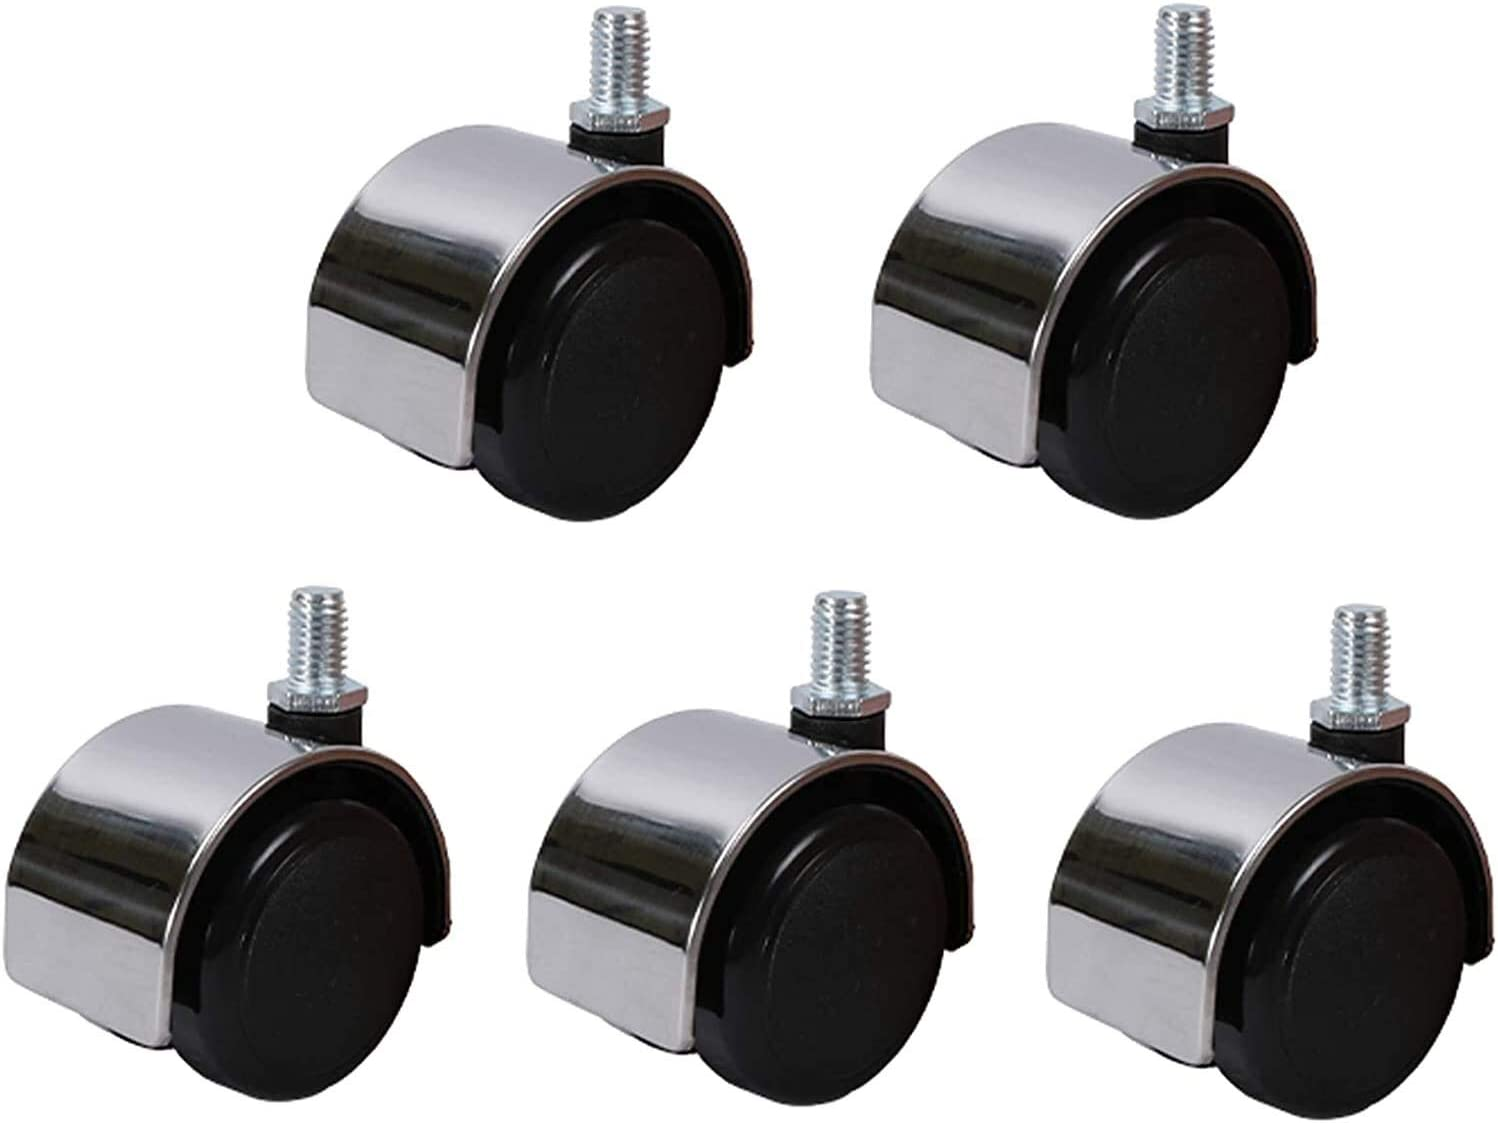 Casters Set Fashion of 5 Office Chair Hard Universal Wheels R Floors Quality inspection for